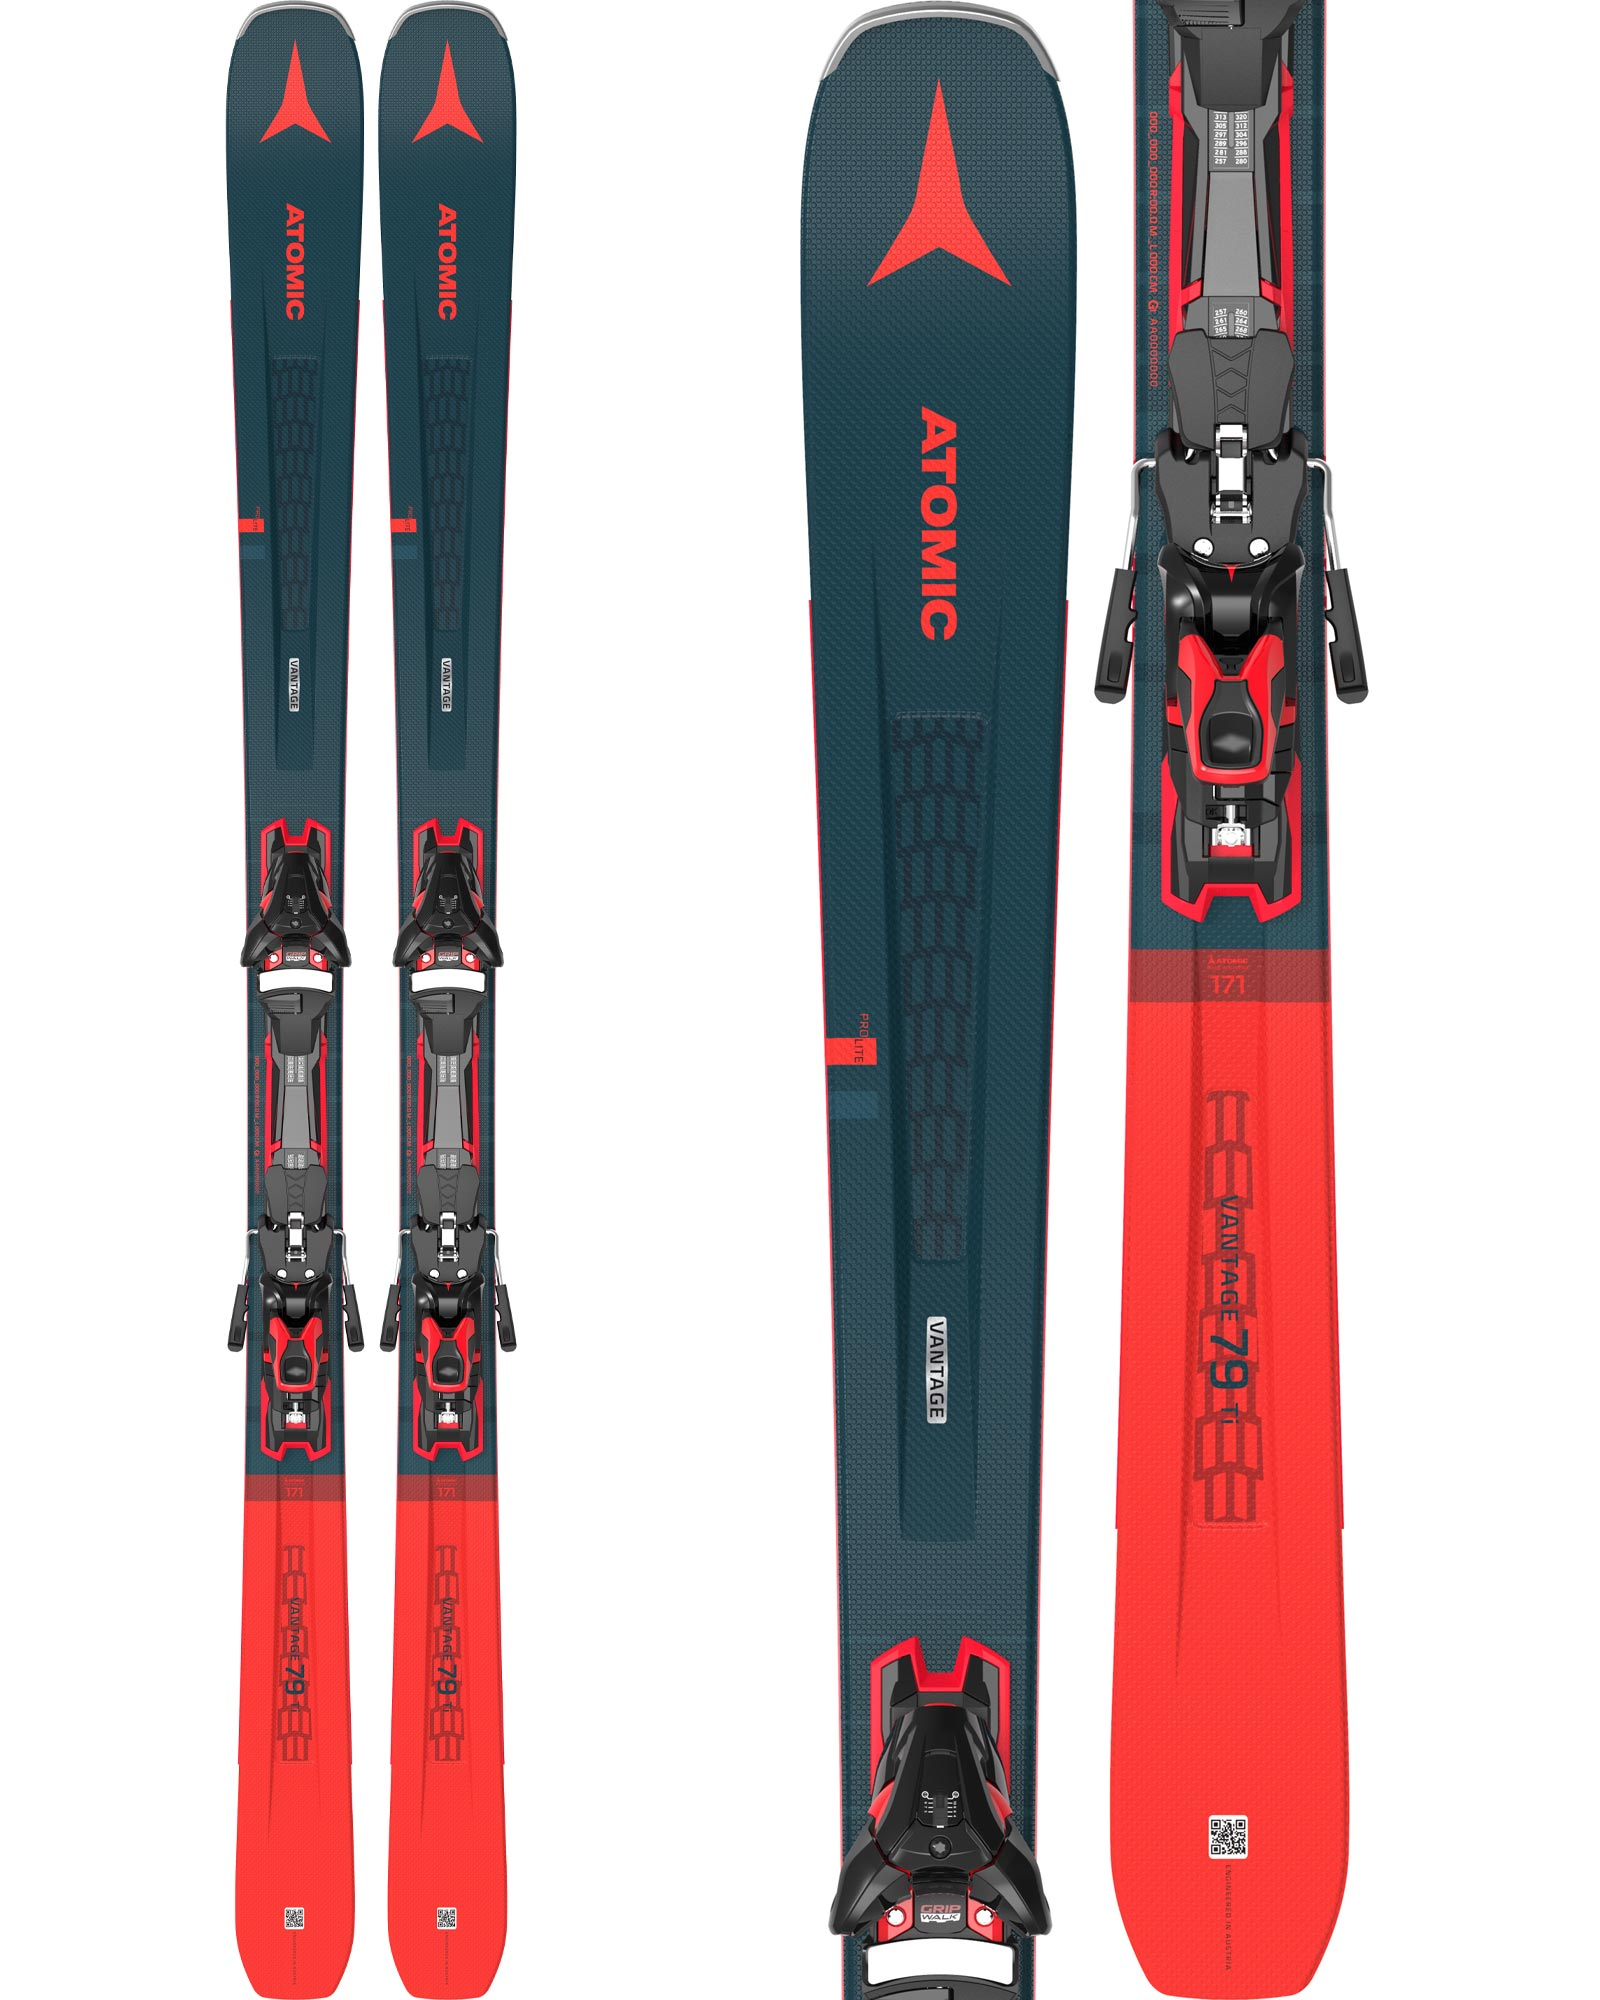 Atomic Redster 10 Jr Pole Ski Race Poles 2016 / 2017